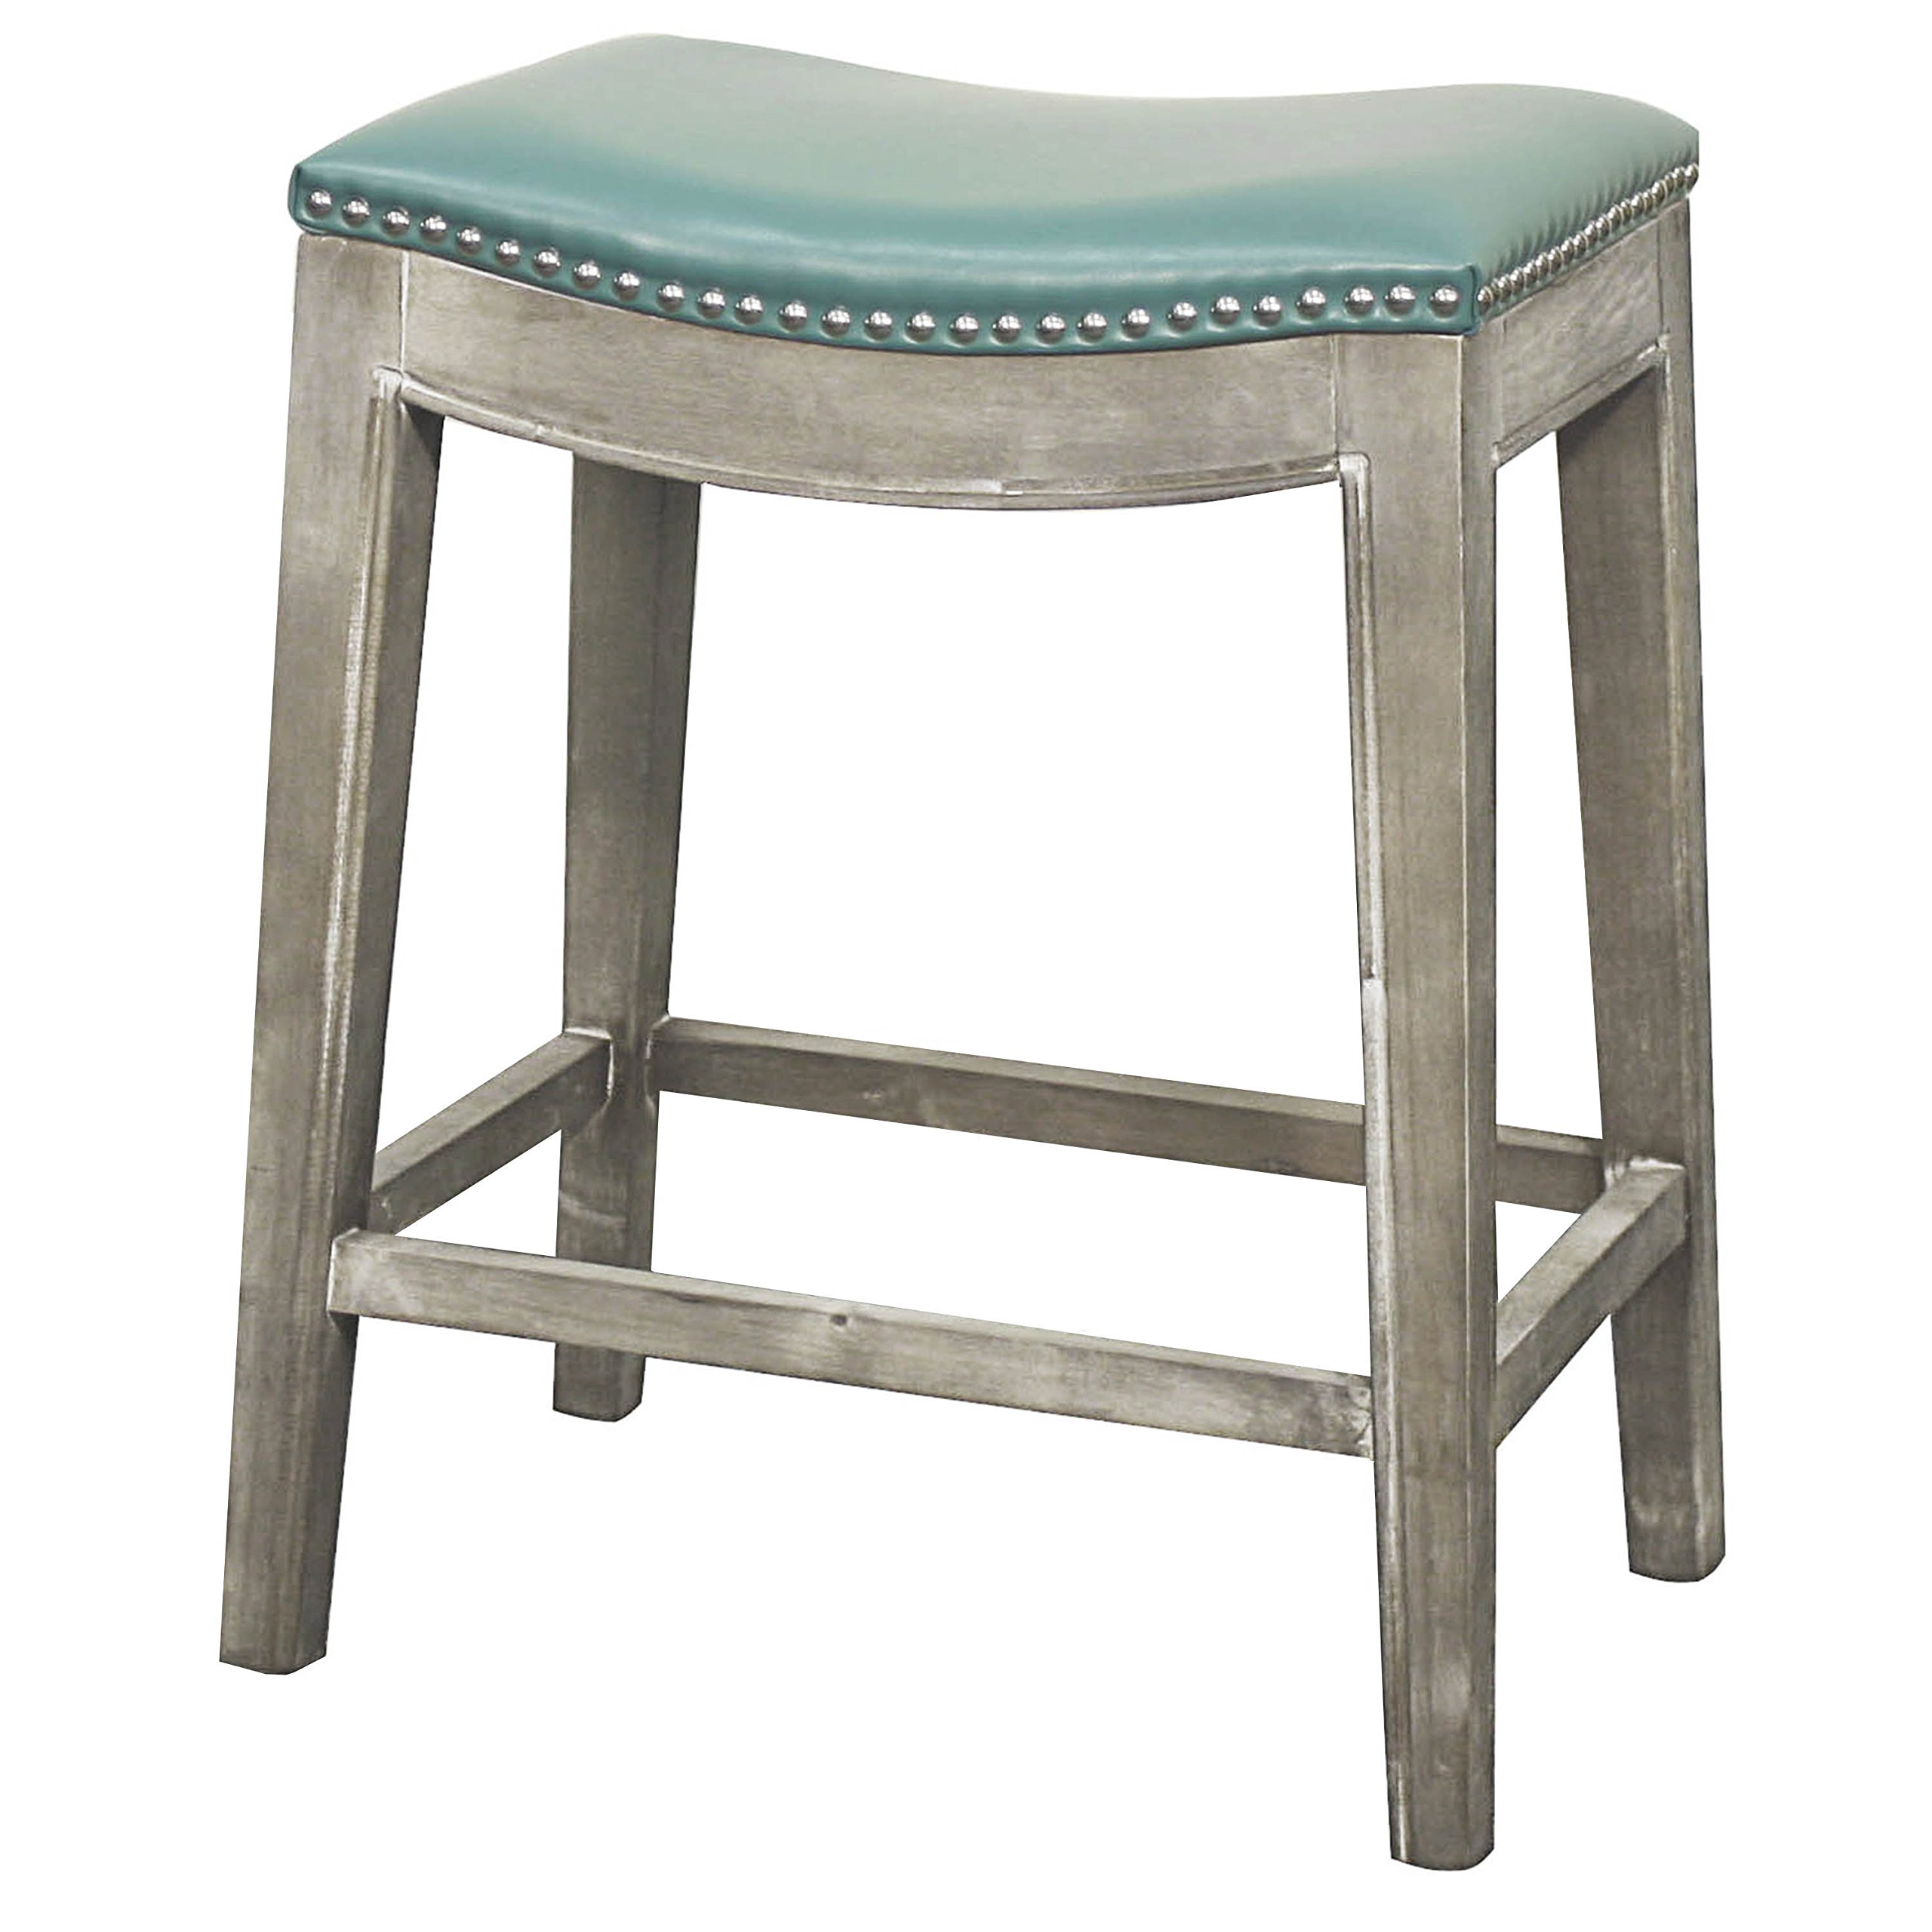 New Pacific Direct Elmo Bonded Leather Counter Stool,Distressed Gray Legs,Turquoise